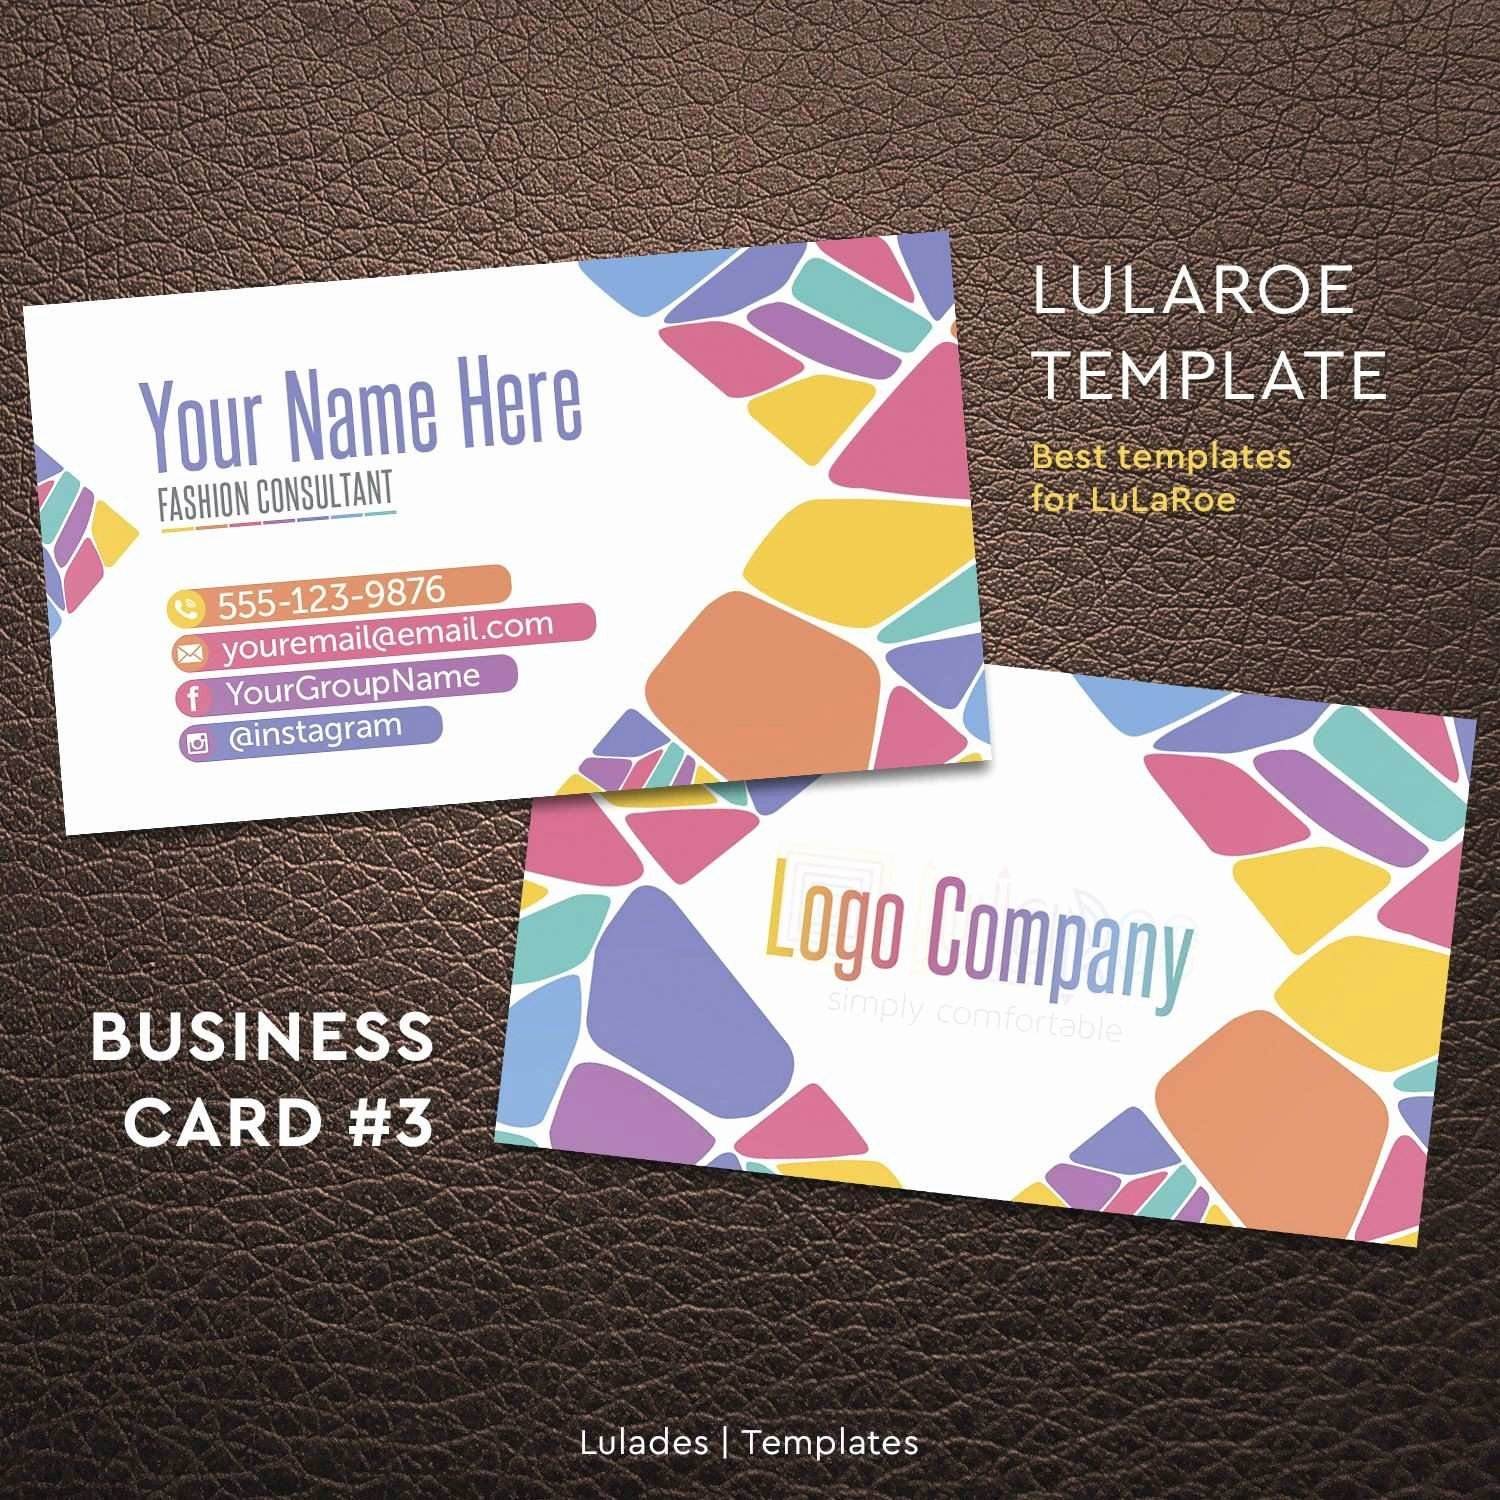 Lularoe Business Cards Vistaprint Elegant Paparazzi